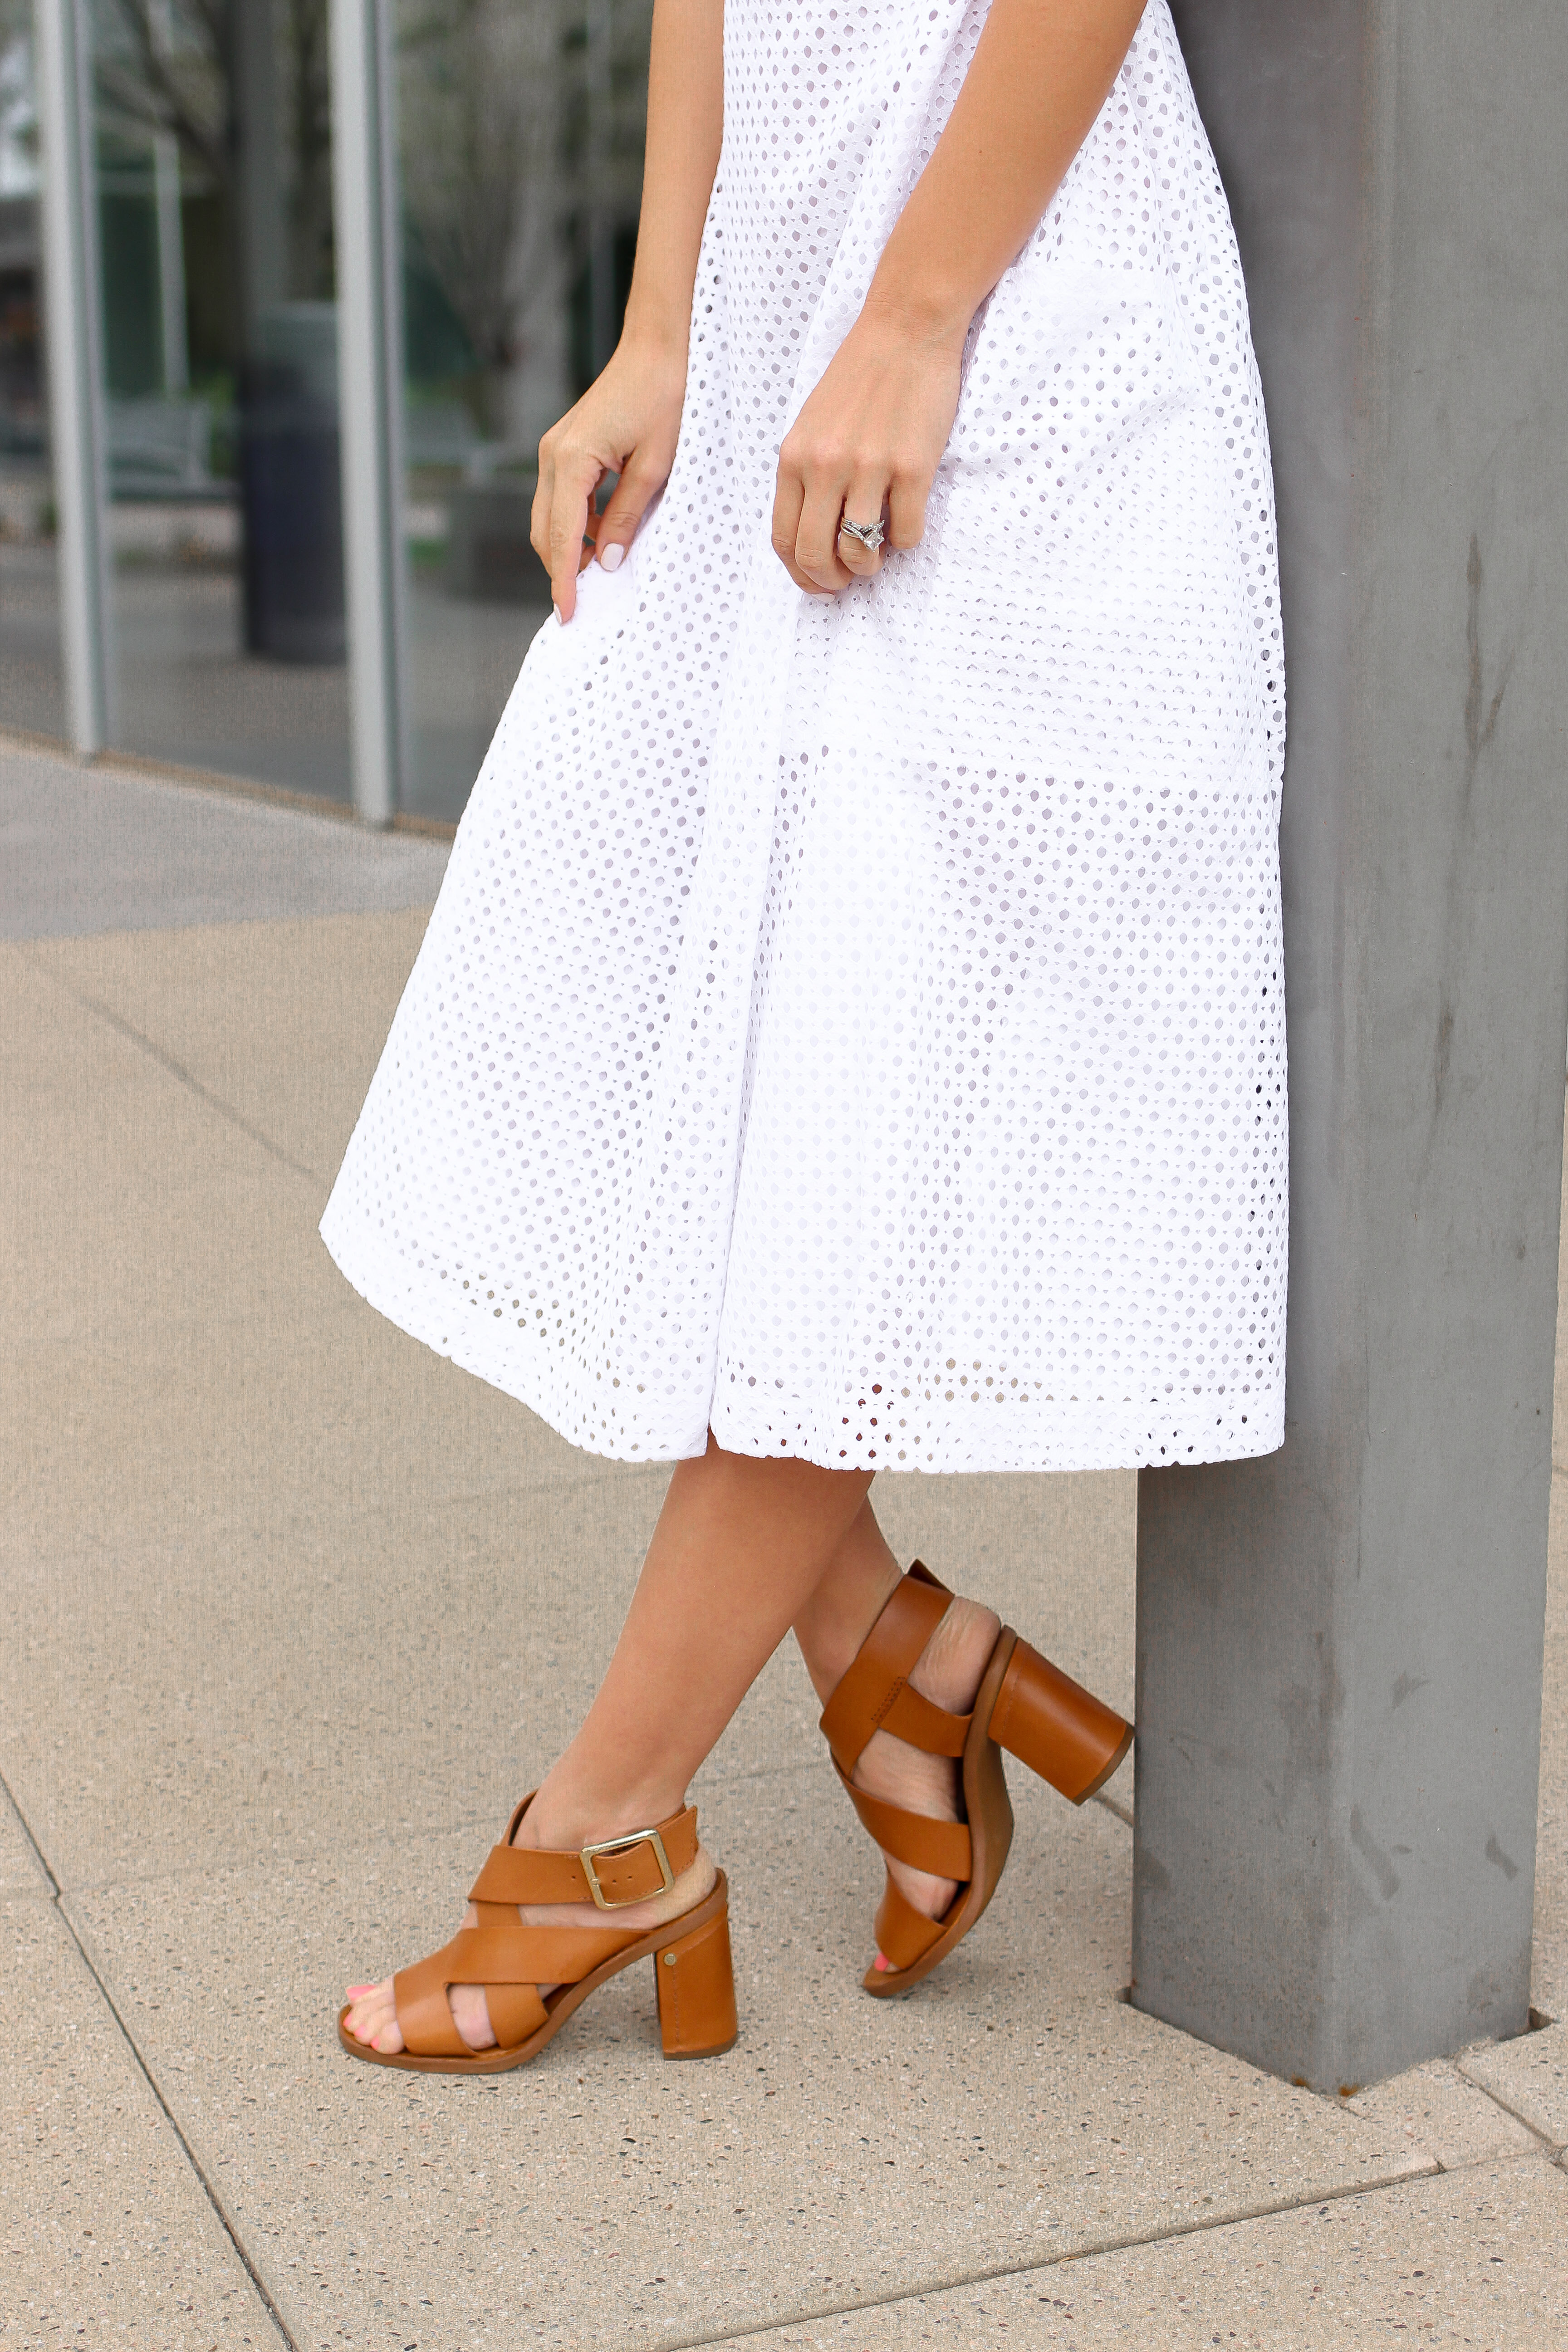 0958cd2cd Simply Sutter – Banana Republic – White Dress – Summer Dress – White Dress  outfit _2846